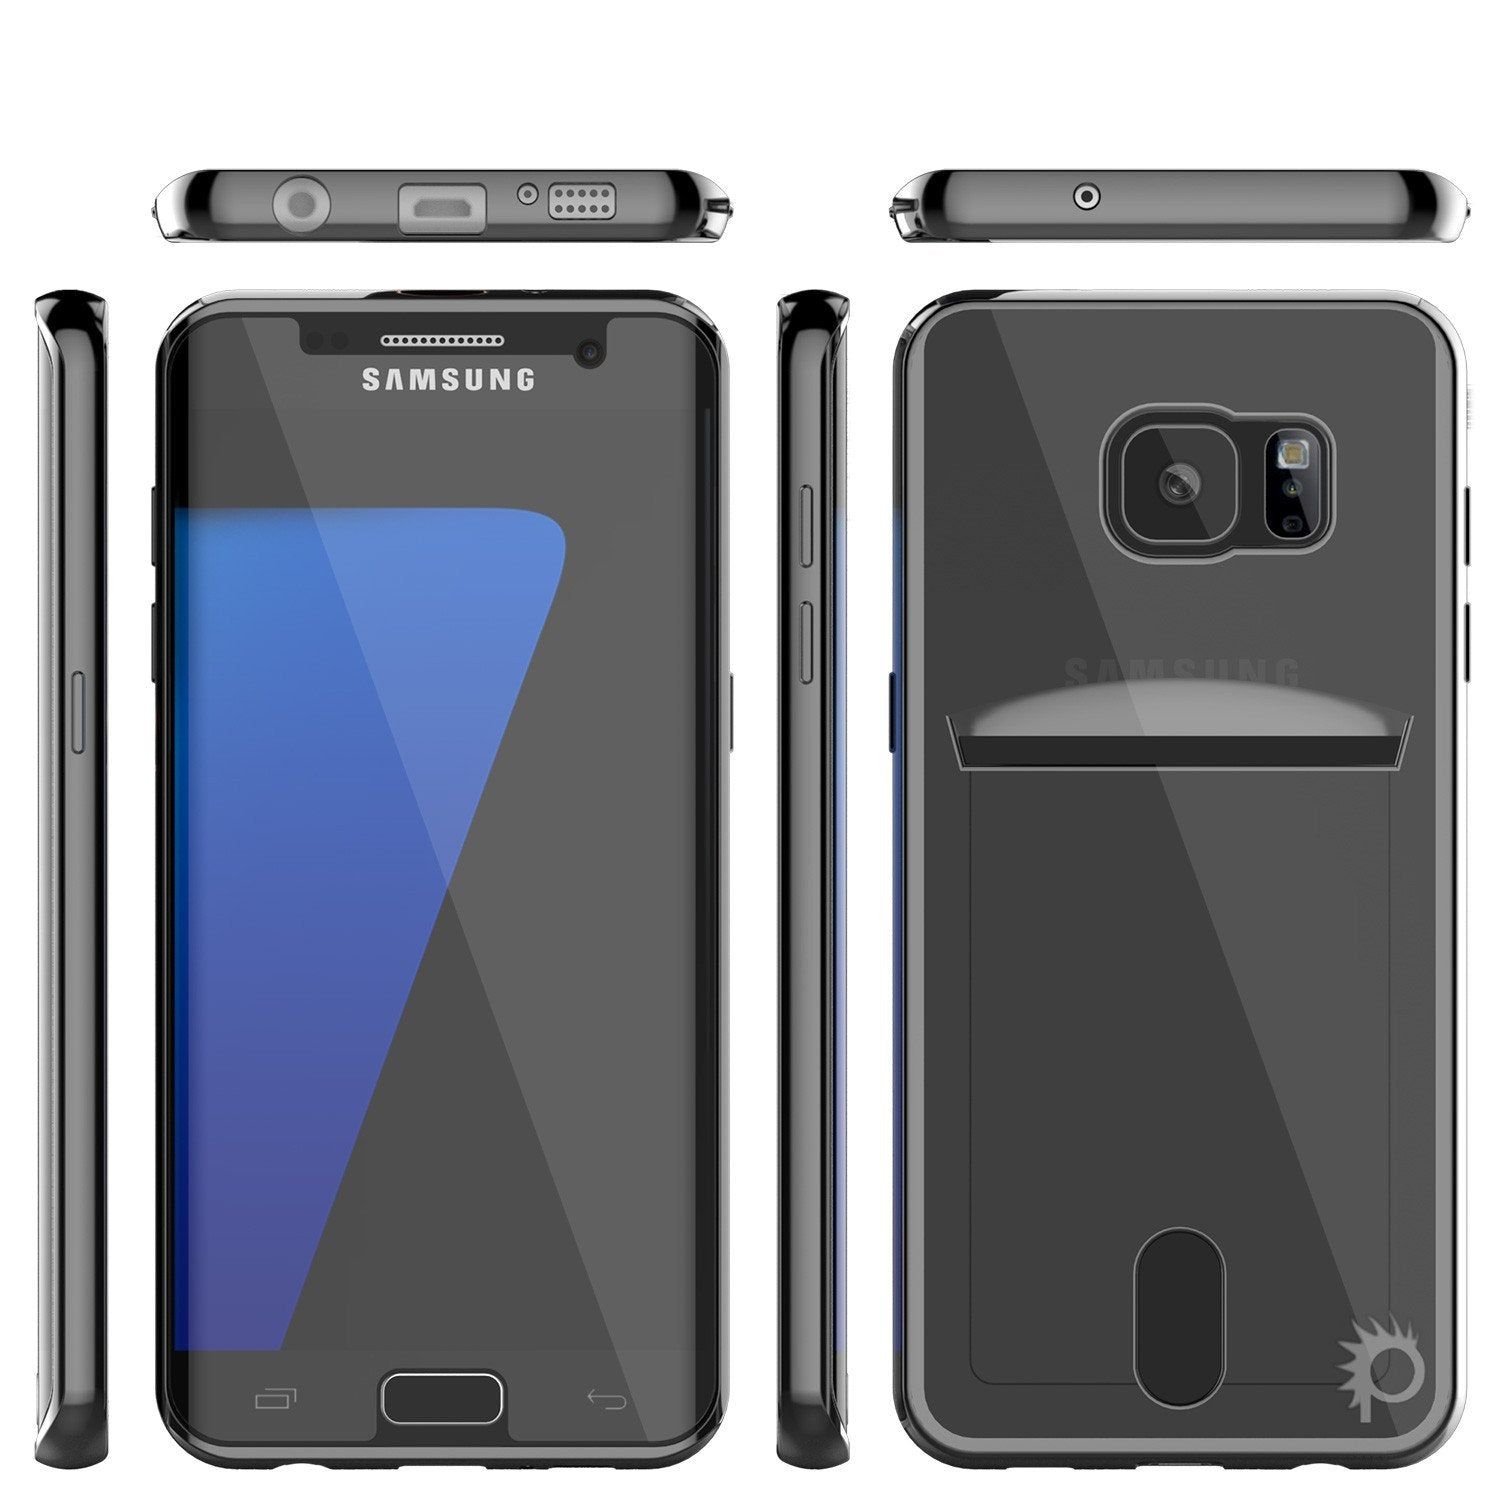 Galaxy S7 EDGE Case, PUNKCASE® LUCID Black Series | Card Slot | SHIELD Screen Protector | Ultra fit